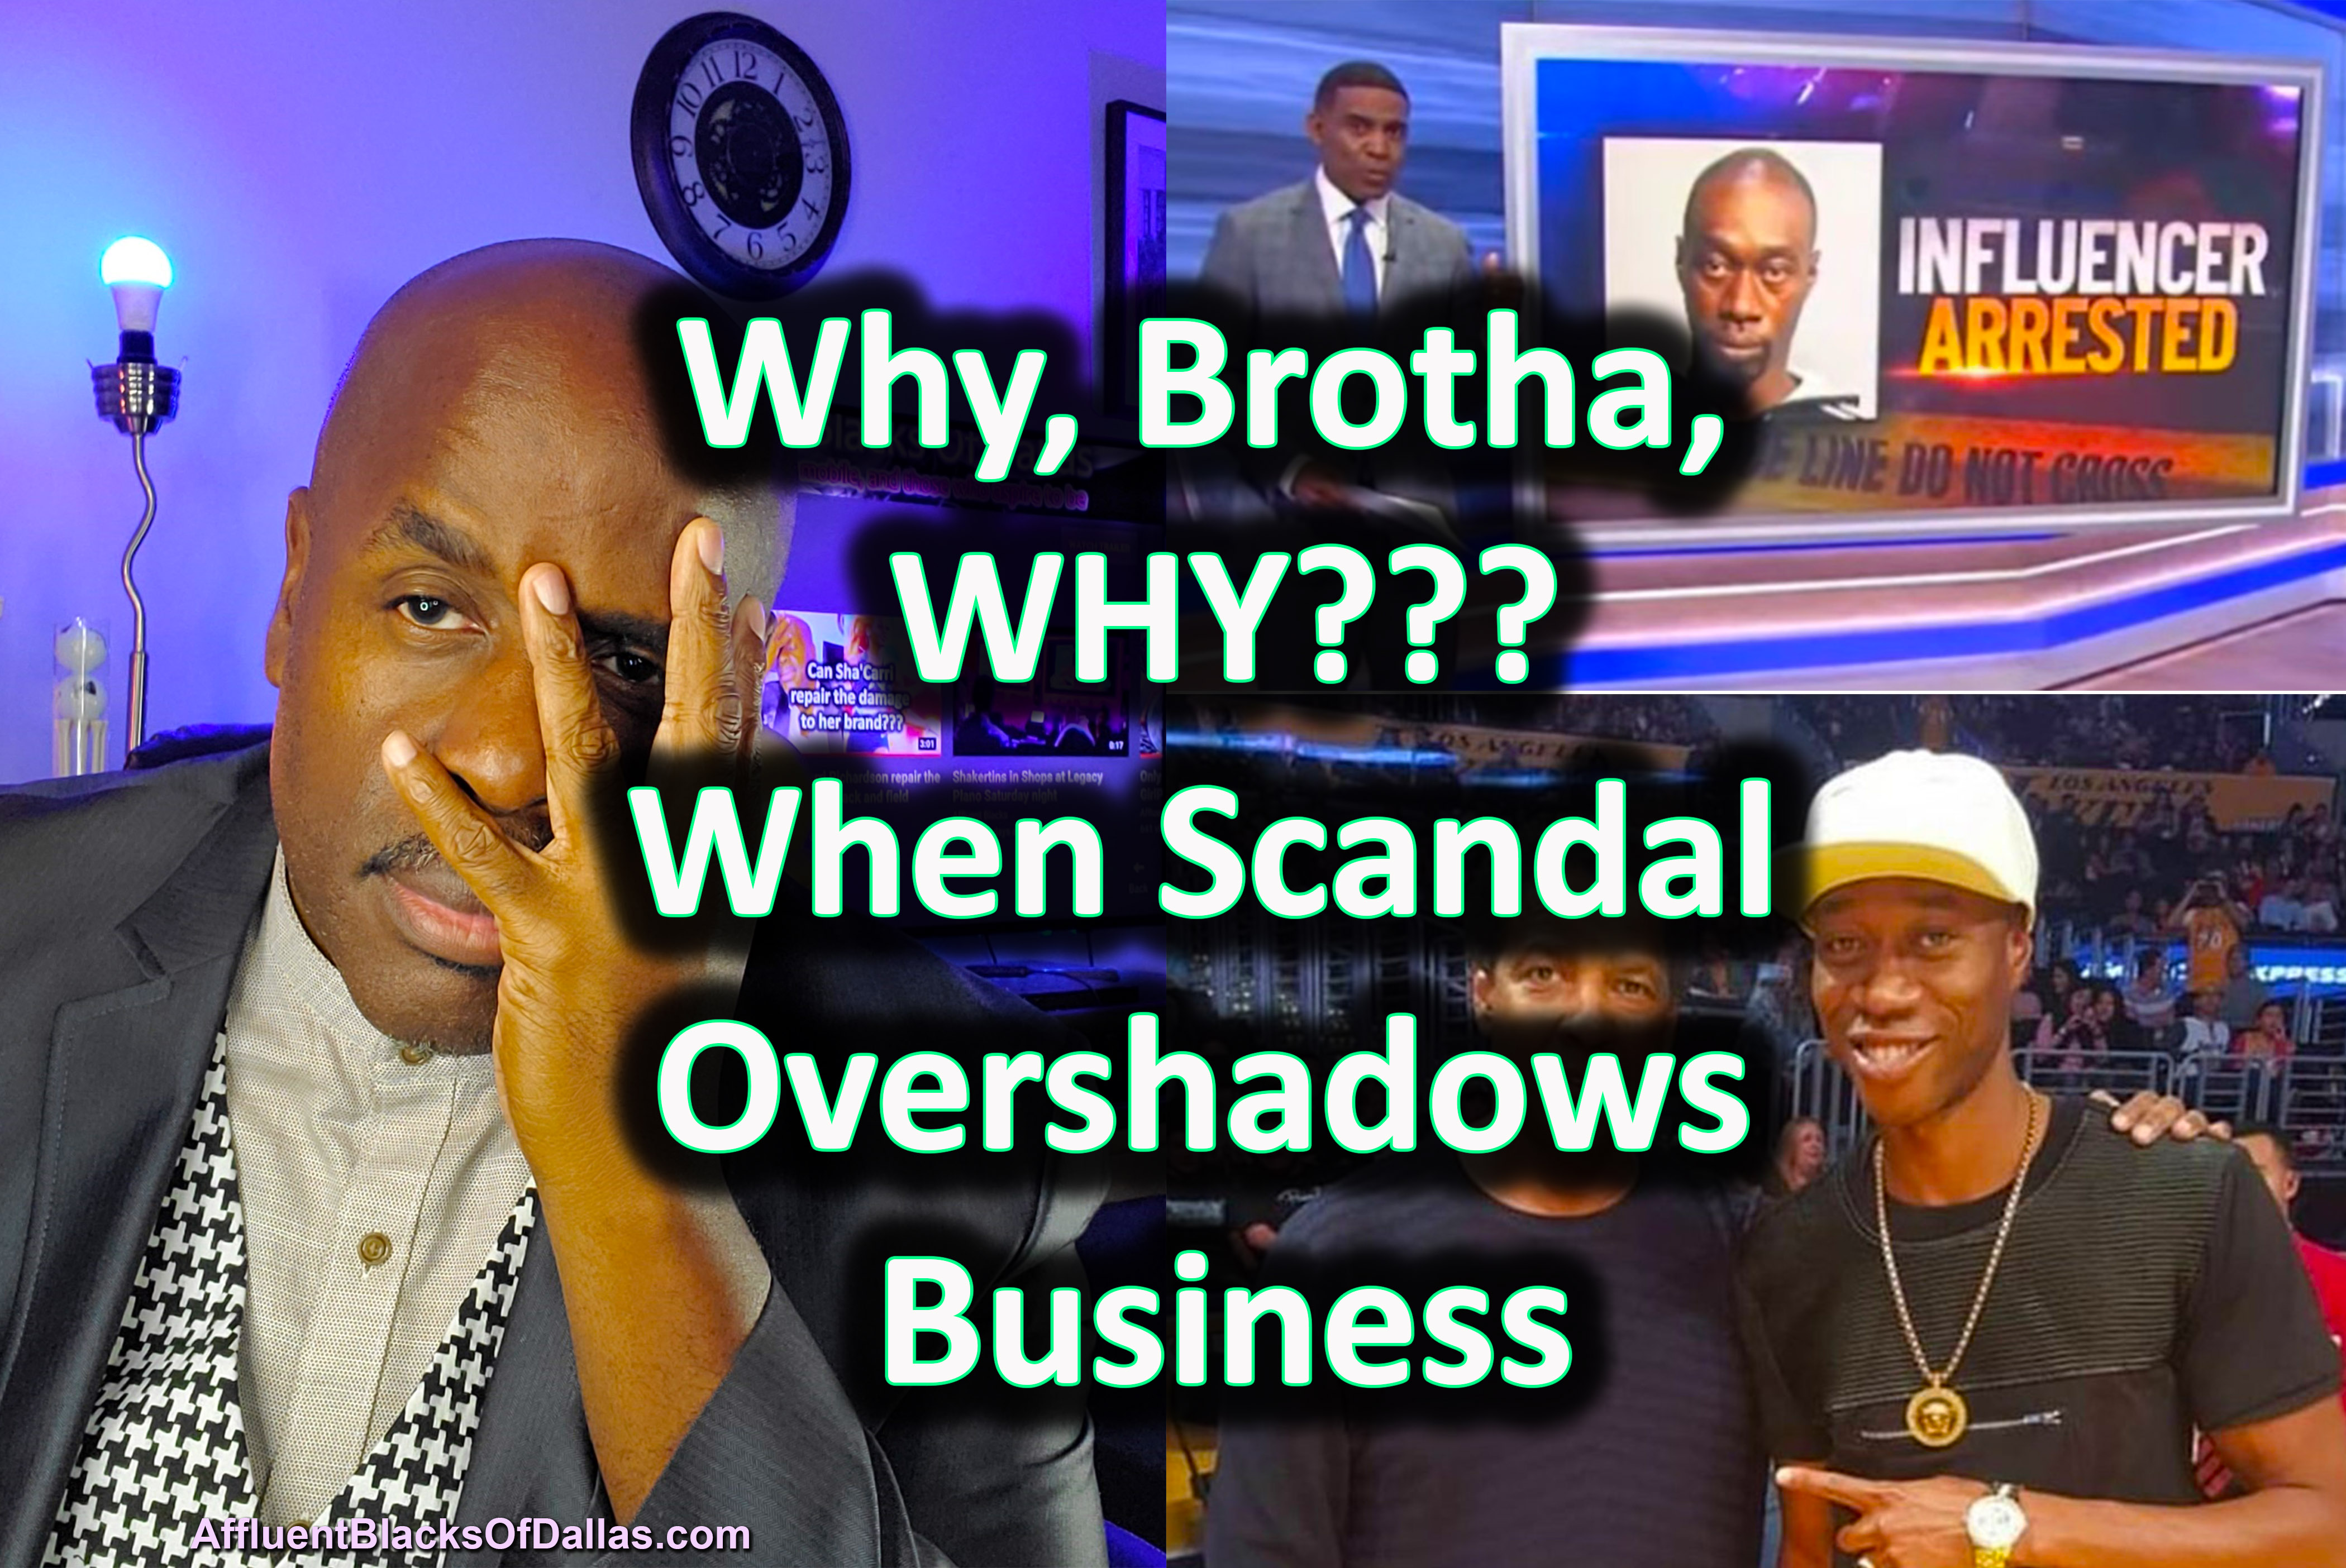 Can Brother Polight's Business Survive the Scandal? Lessons on PR Damage Control and Brand Mgmt